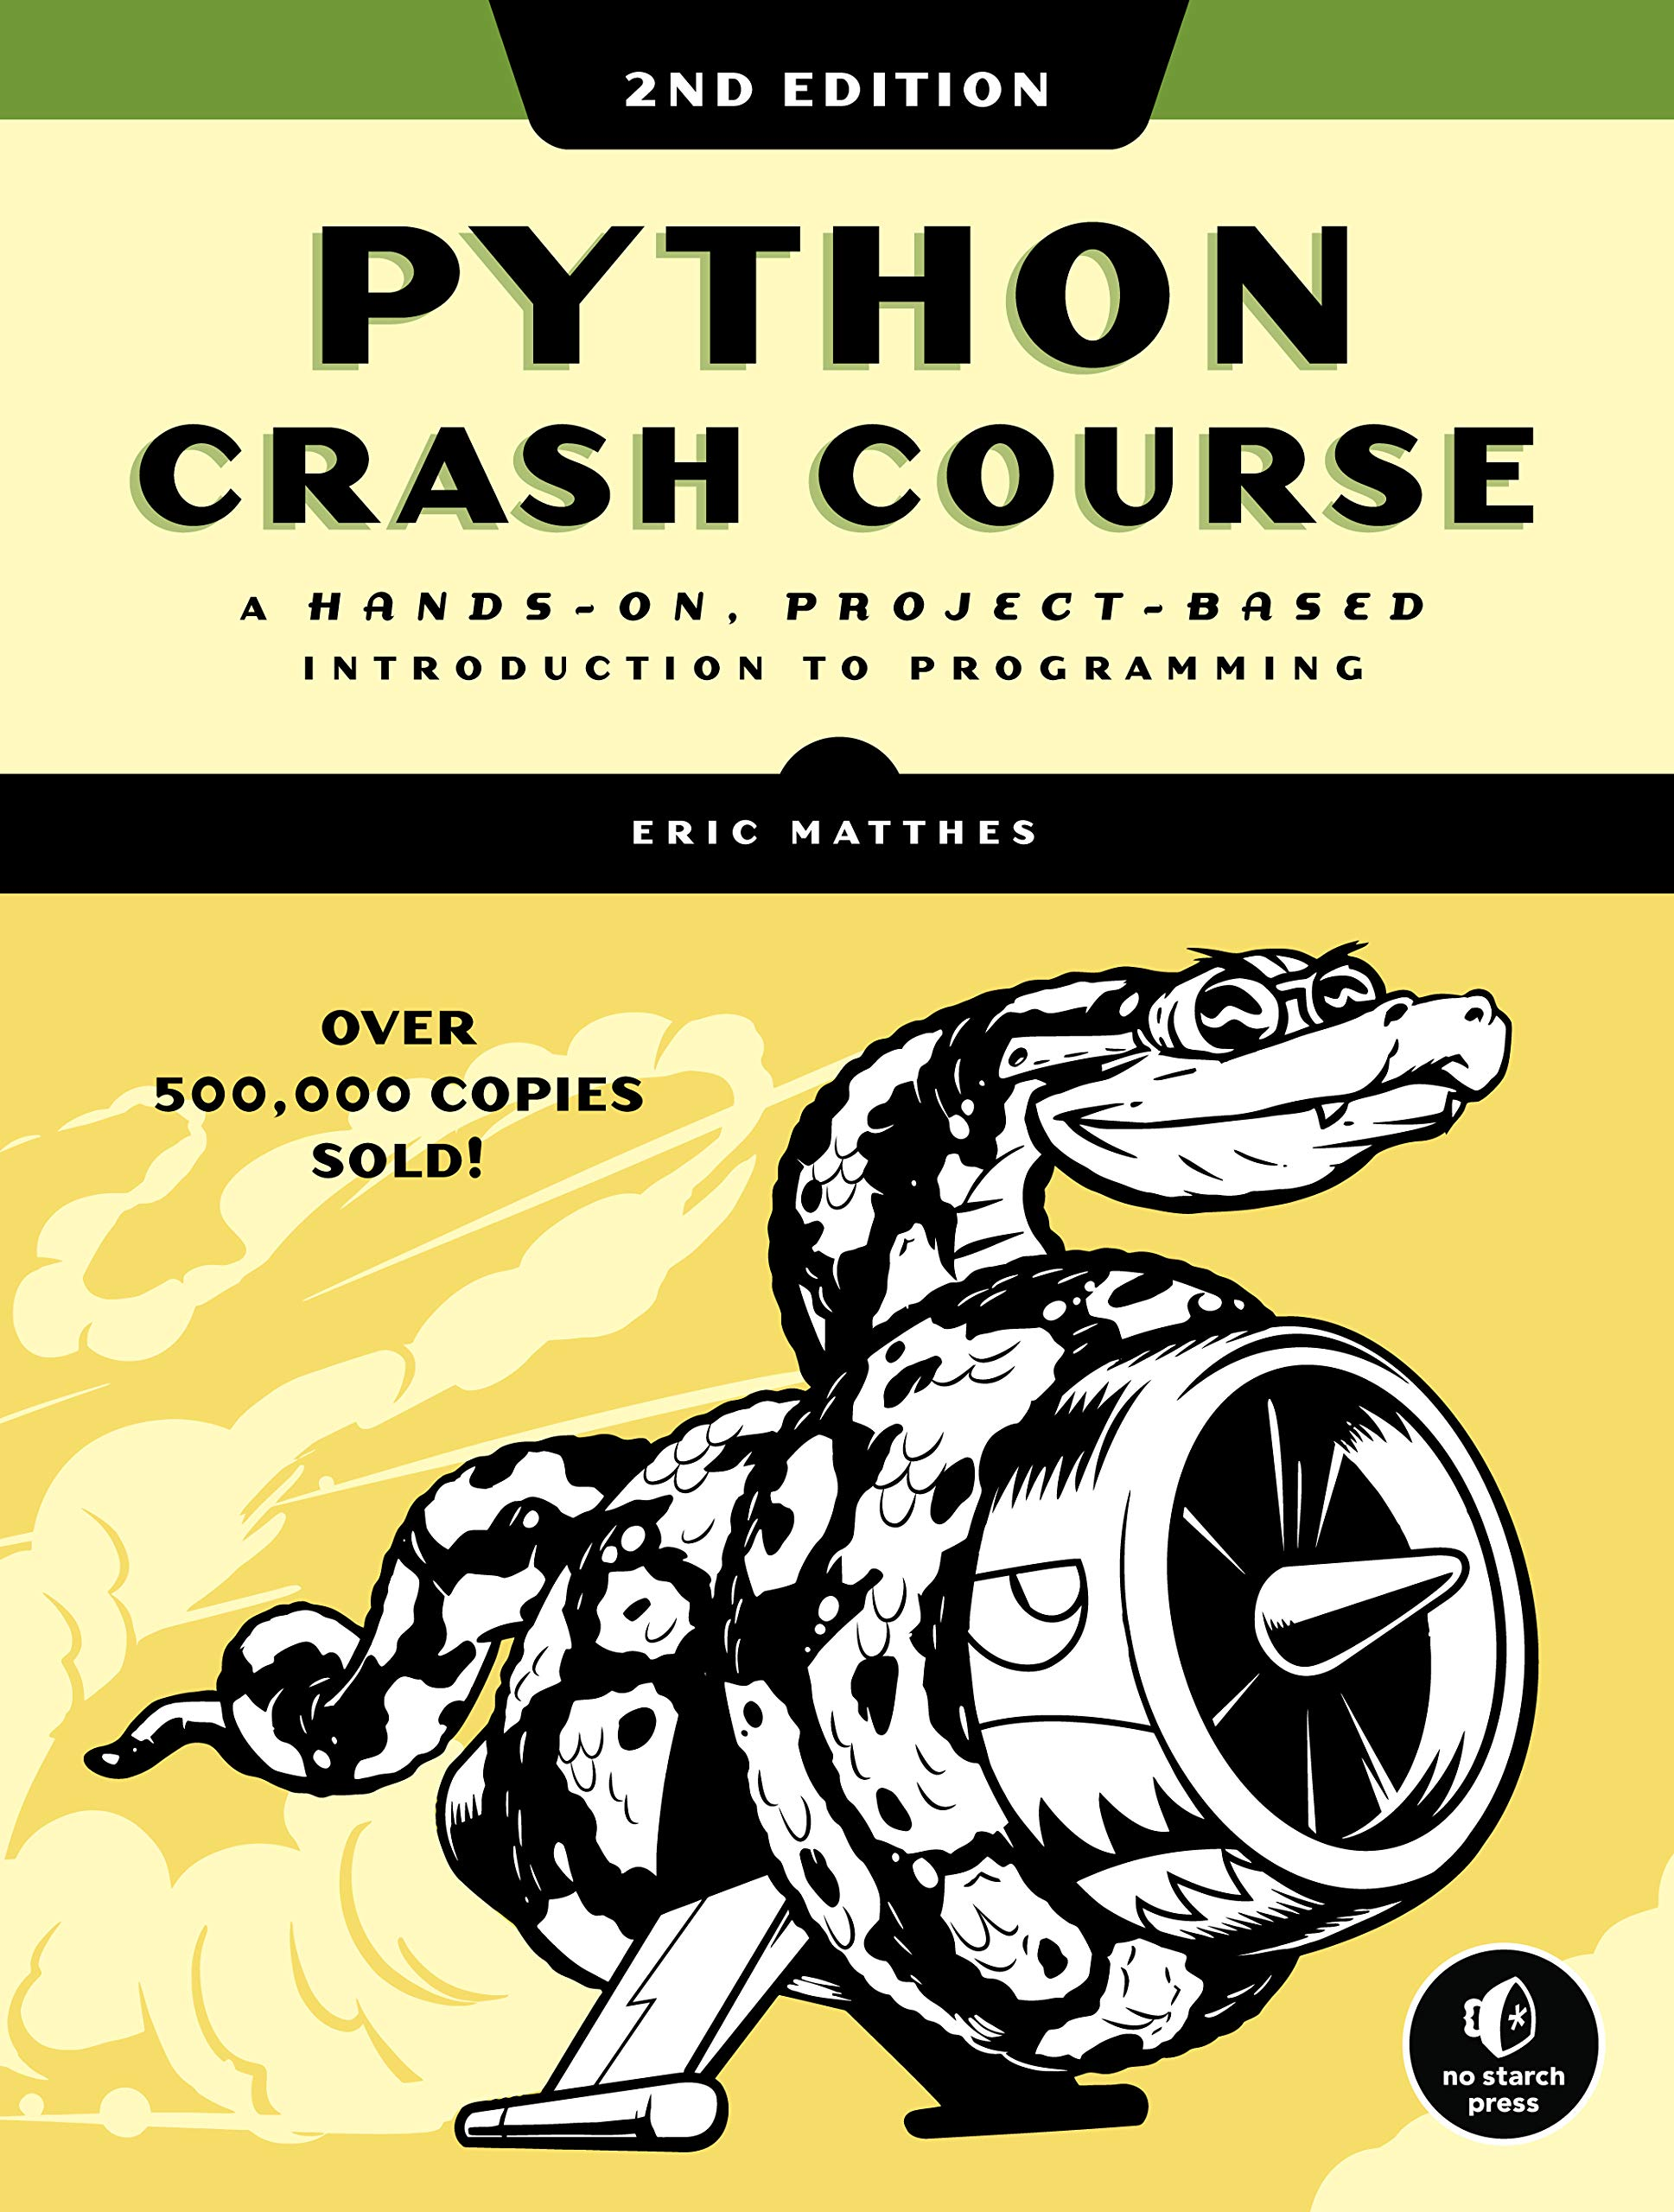 Python Crash Course 2nd Edition product image